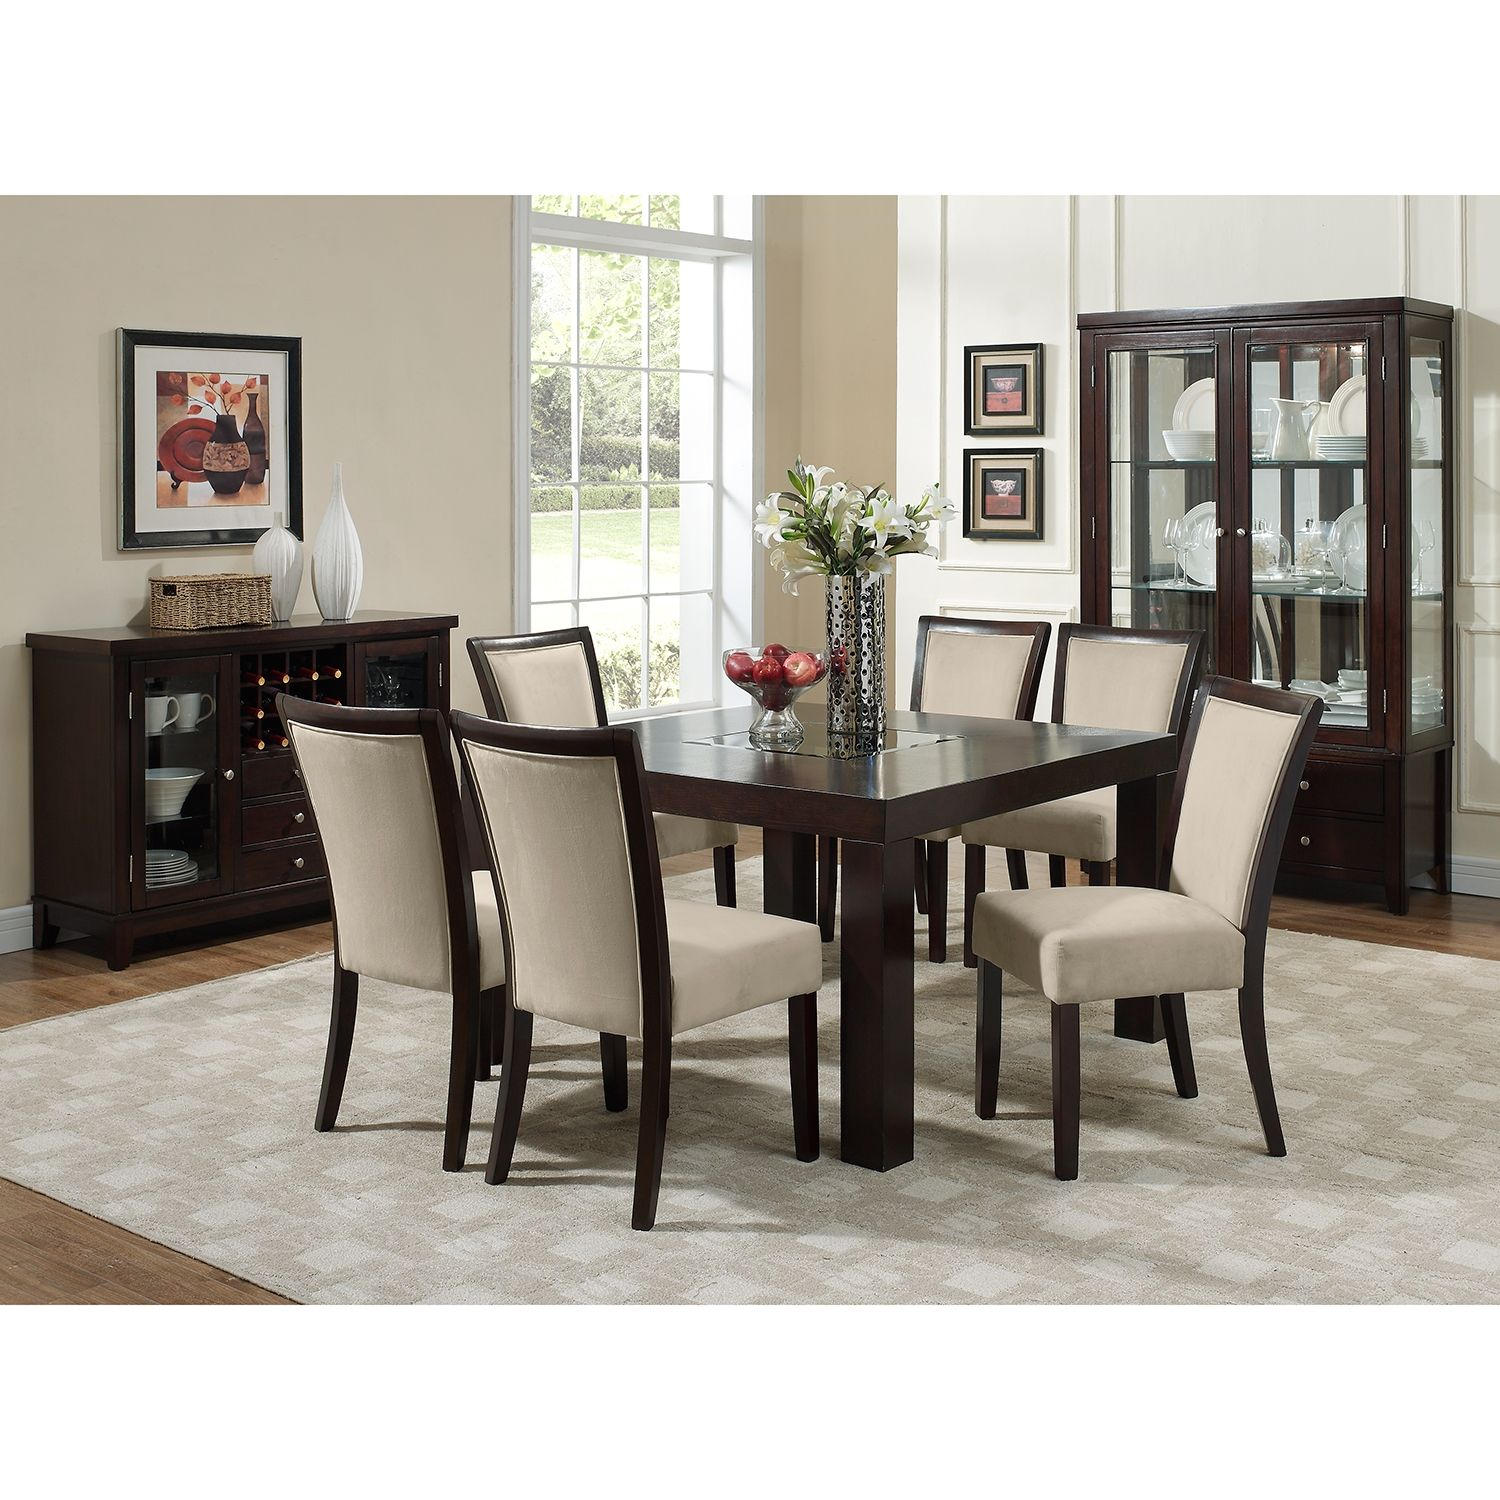 Tango Stone 7 Pc Dinette 50 Table